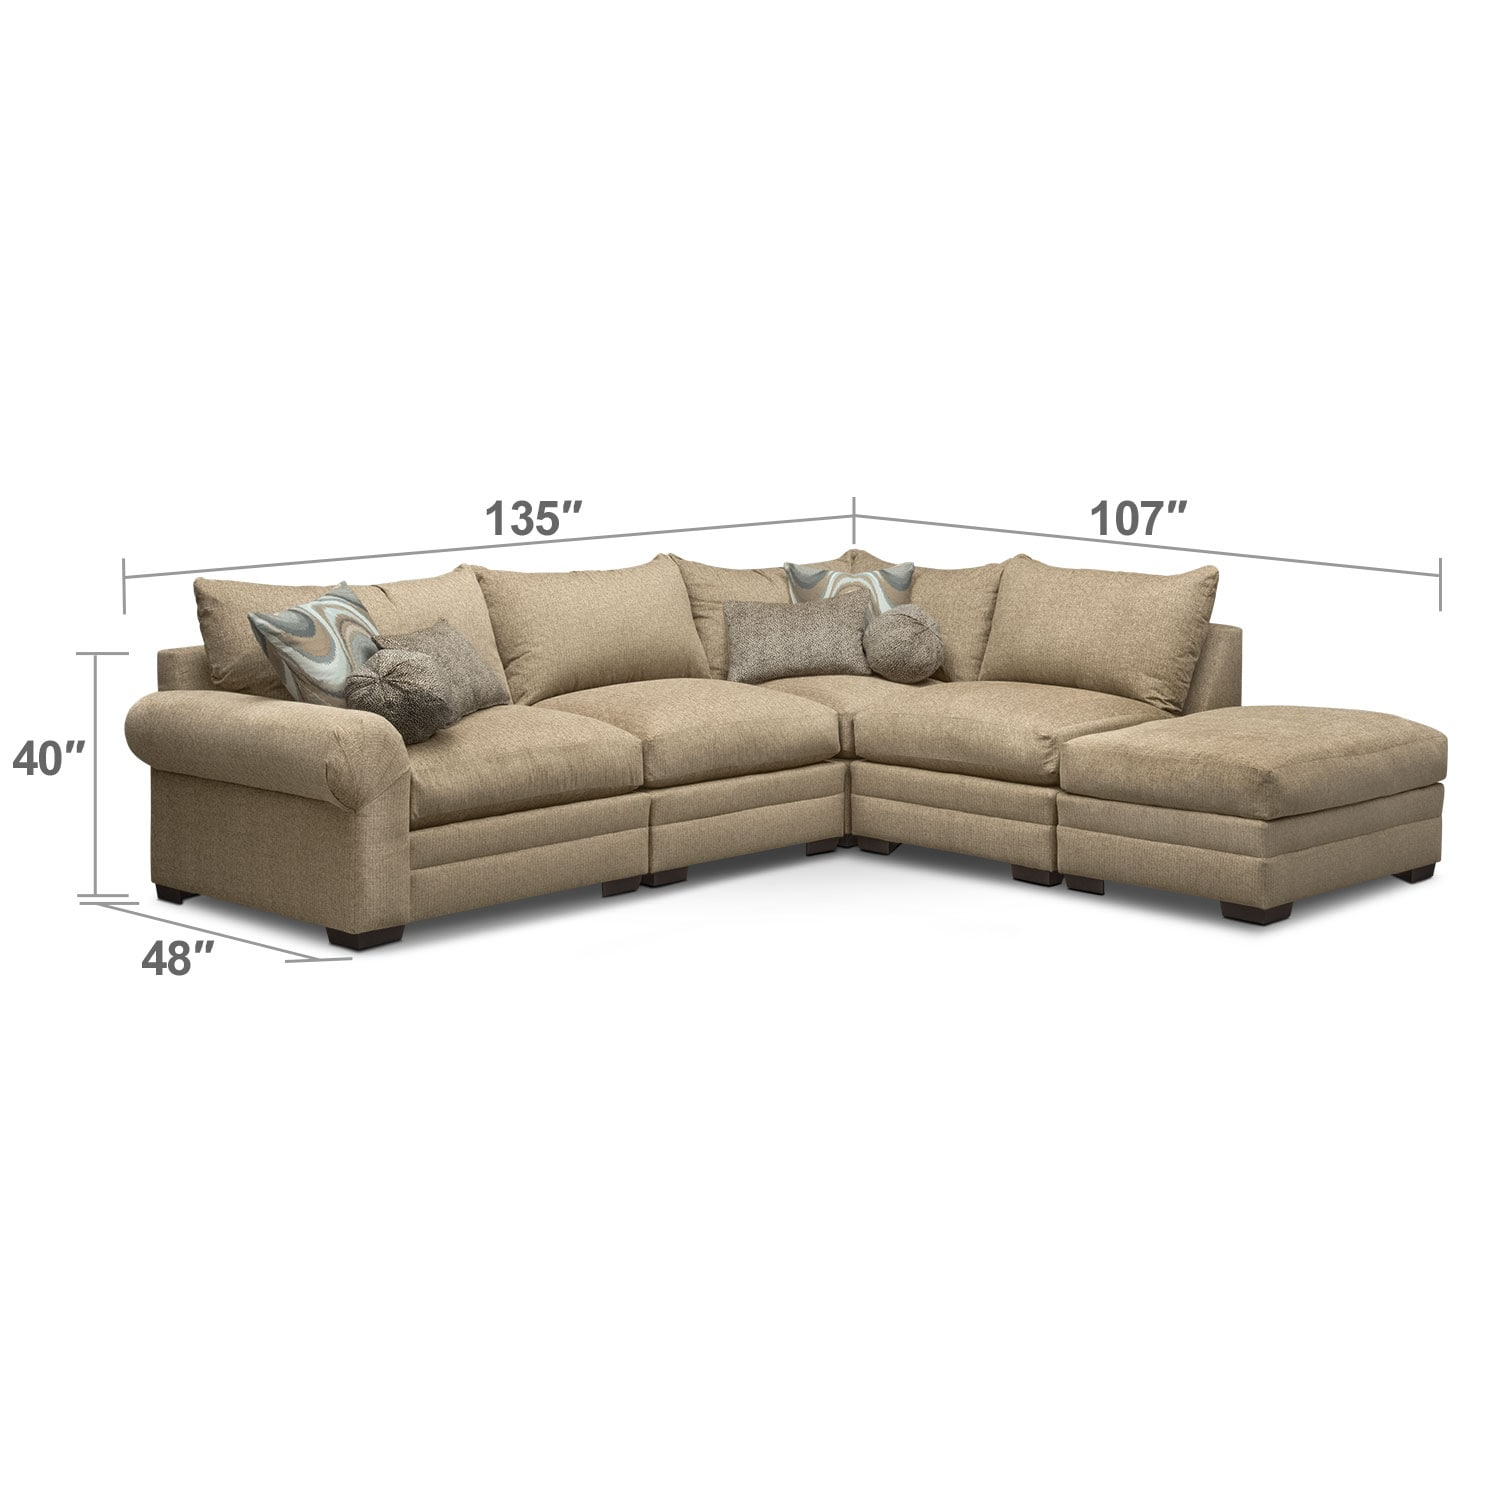 Living Room Furniture - Wilshire 5-Piece Right-Facing Sectional - Taupe